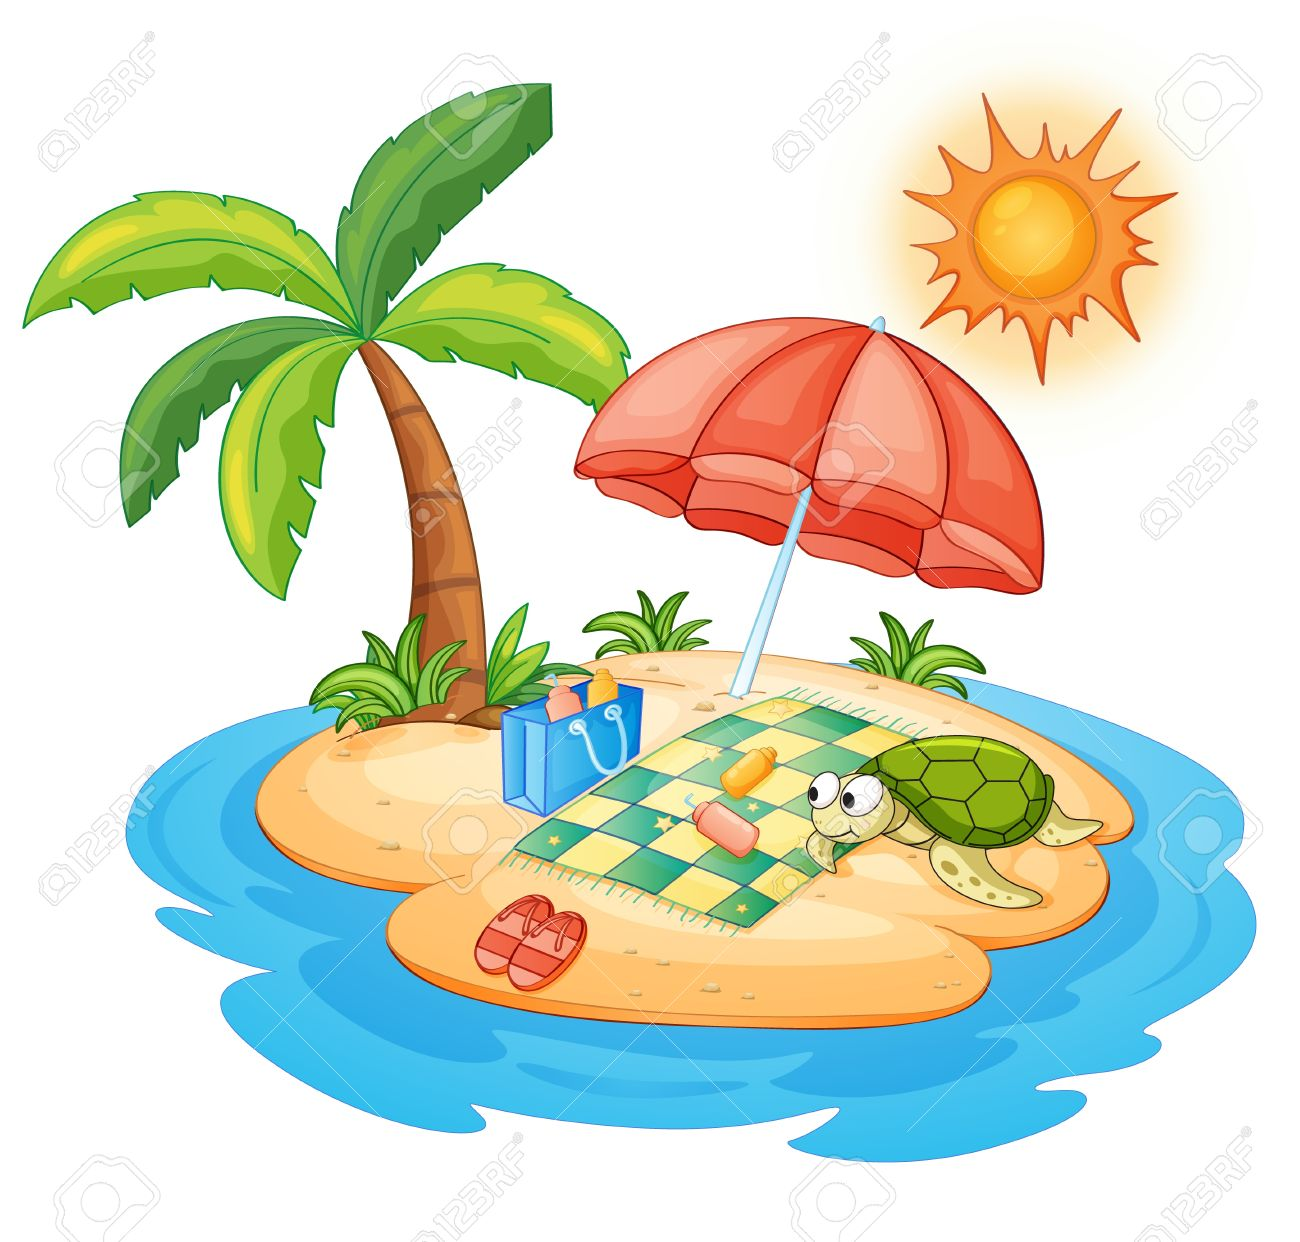 illustration of a turtle on an island Stock Vector - 13700111